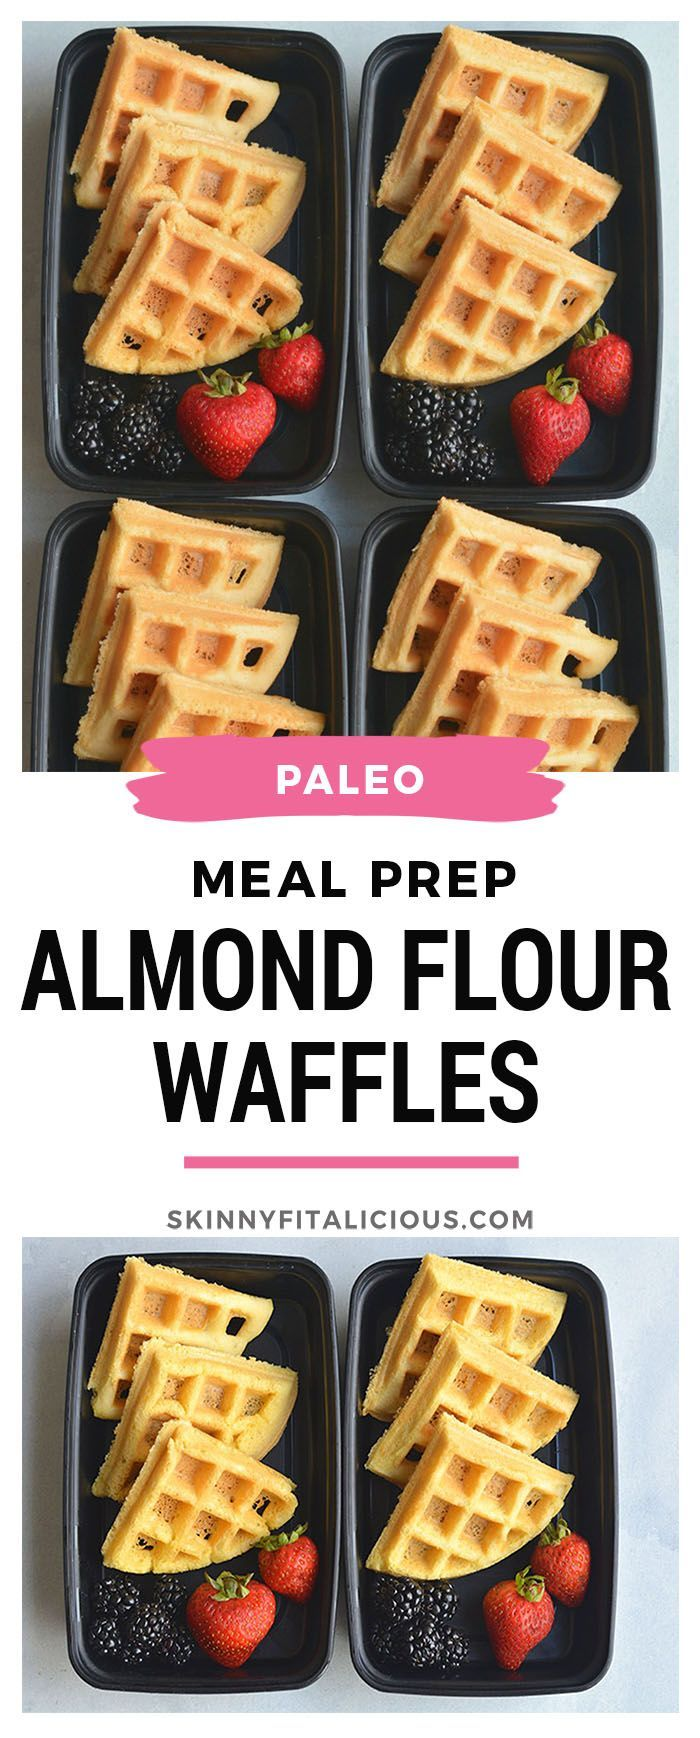 Prep Almond Flour Waffles are a breeze tomake and rich in protein. Easy to make light and fluffy with a few healthy, dairy free ingredients. Great for an easy breakfast meal prep and freezable too! Paleo + Gluten Free